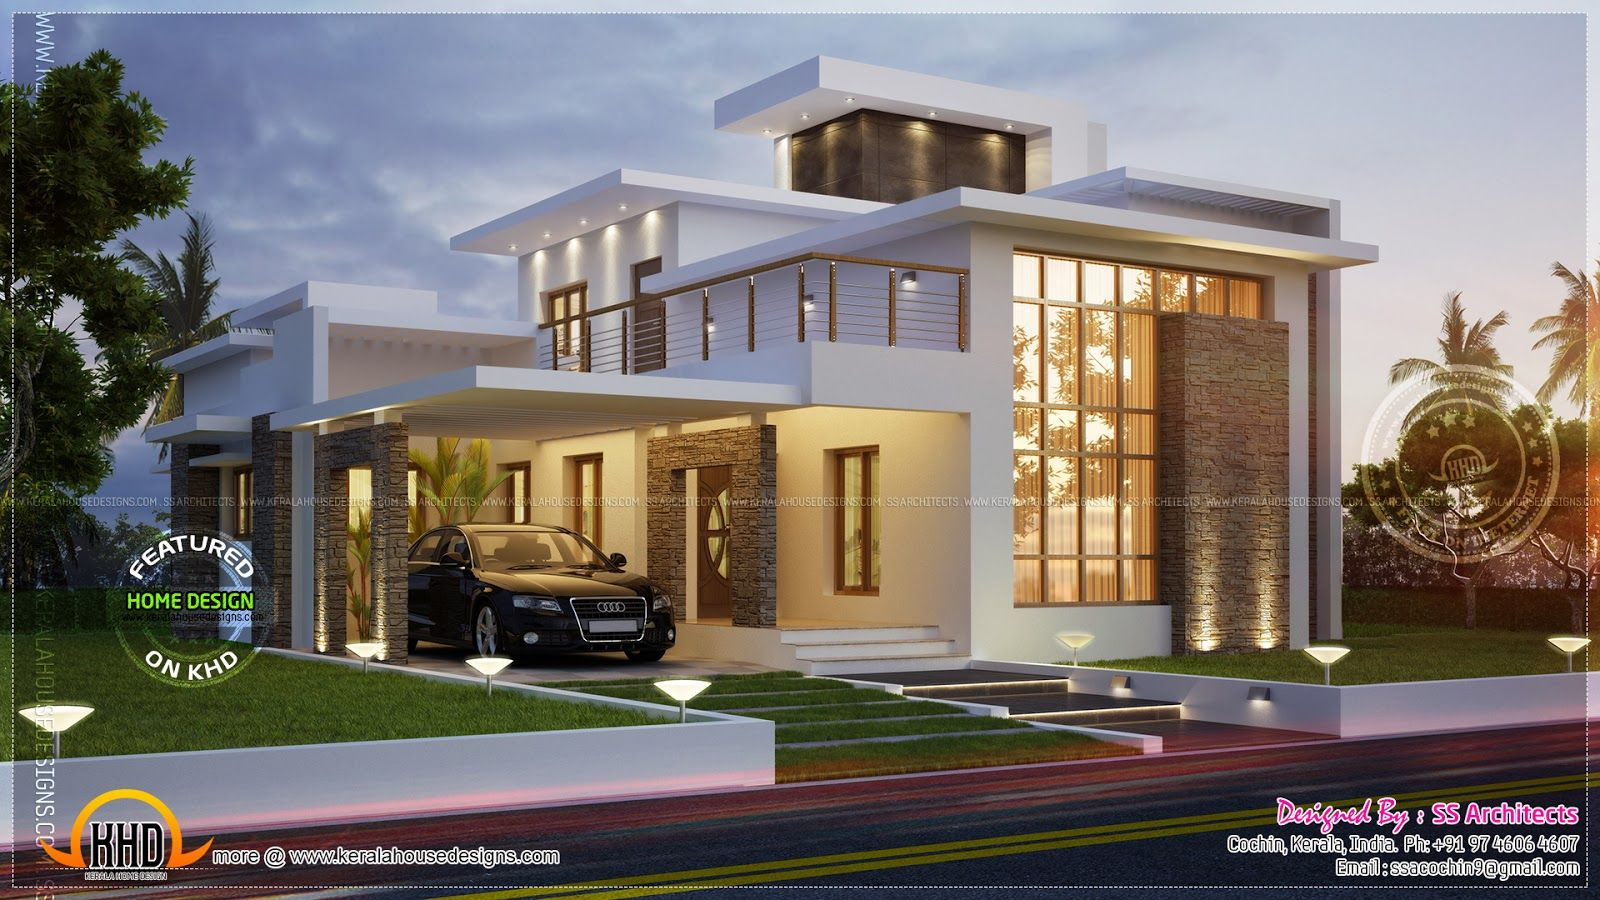 Sq feet contemporary house kerala home design floor plans for Award winning house designs in india